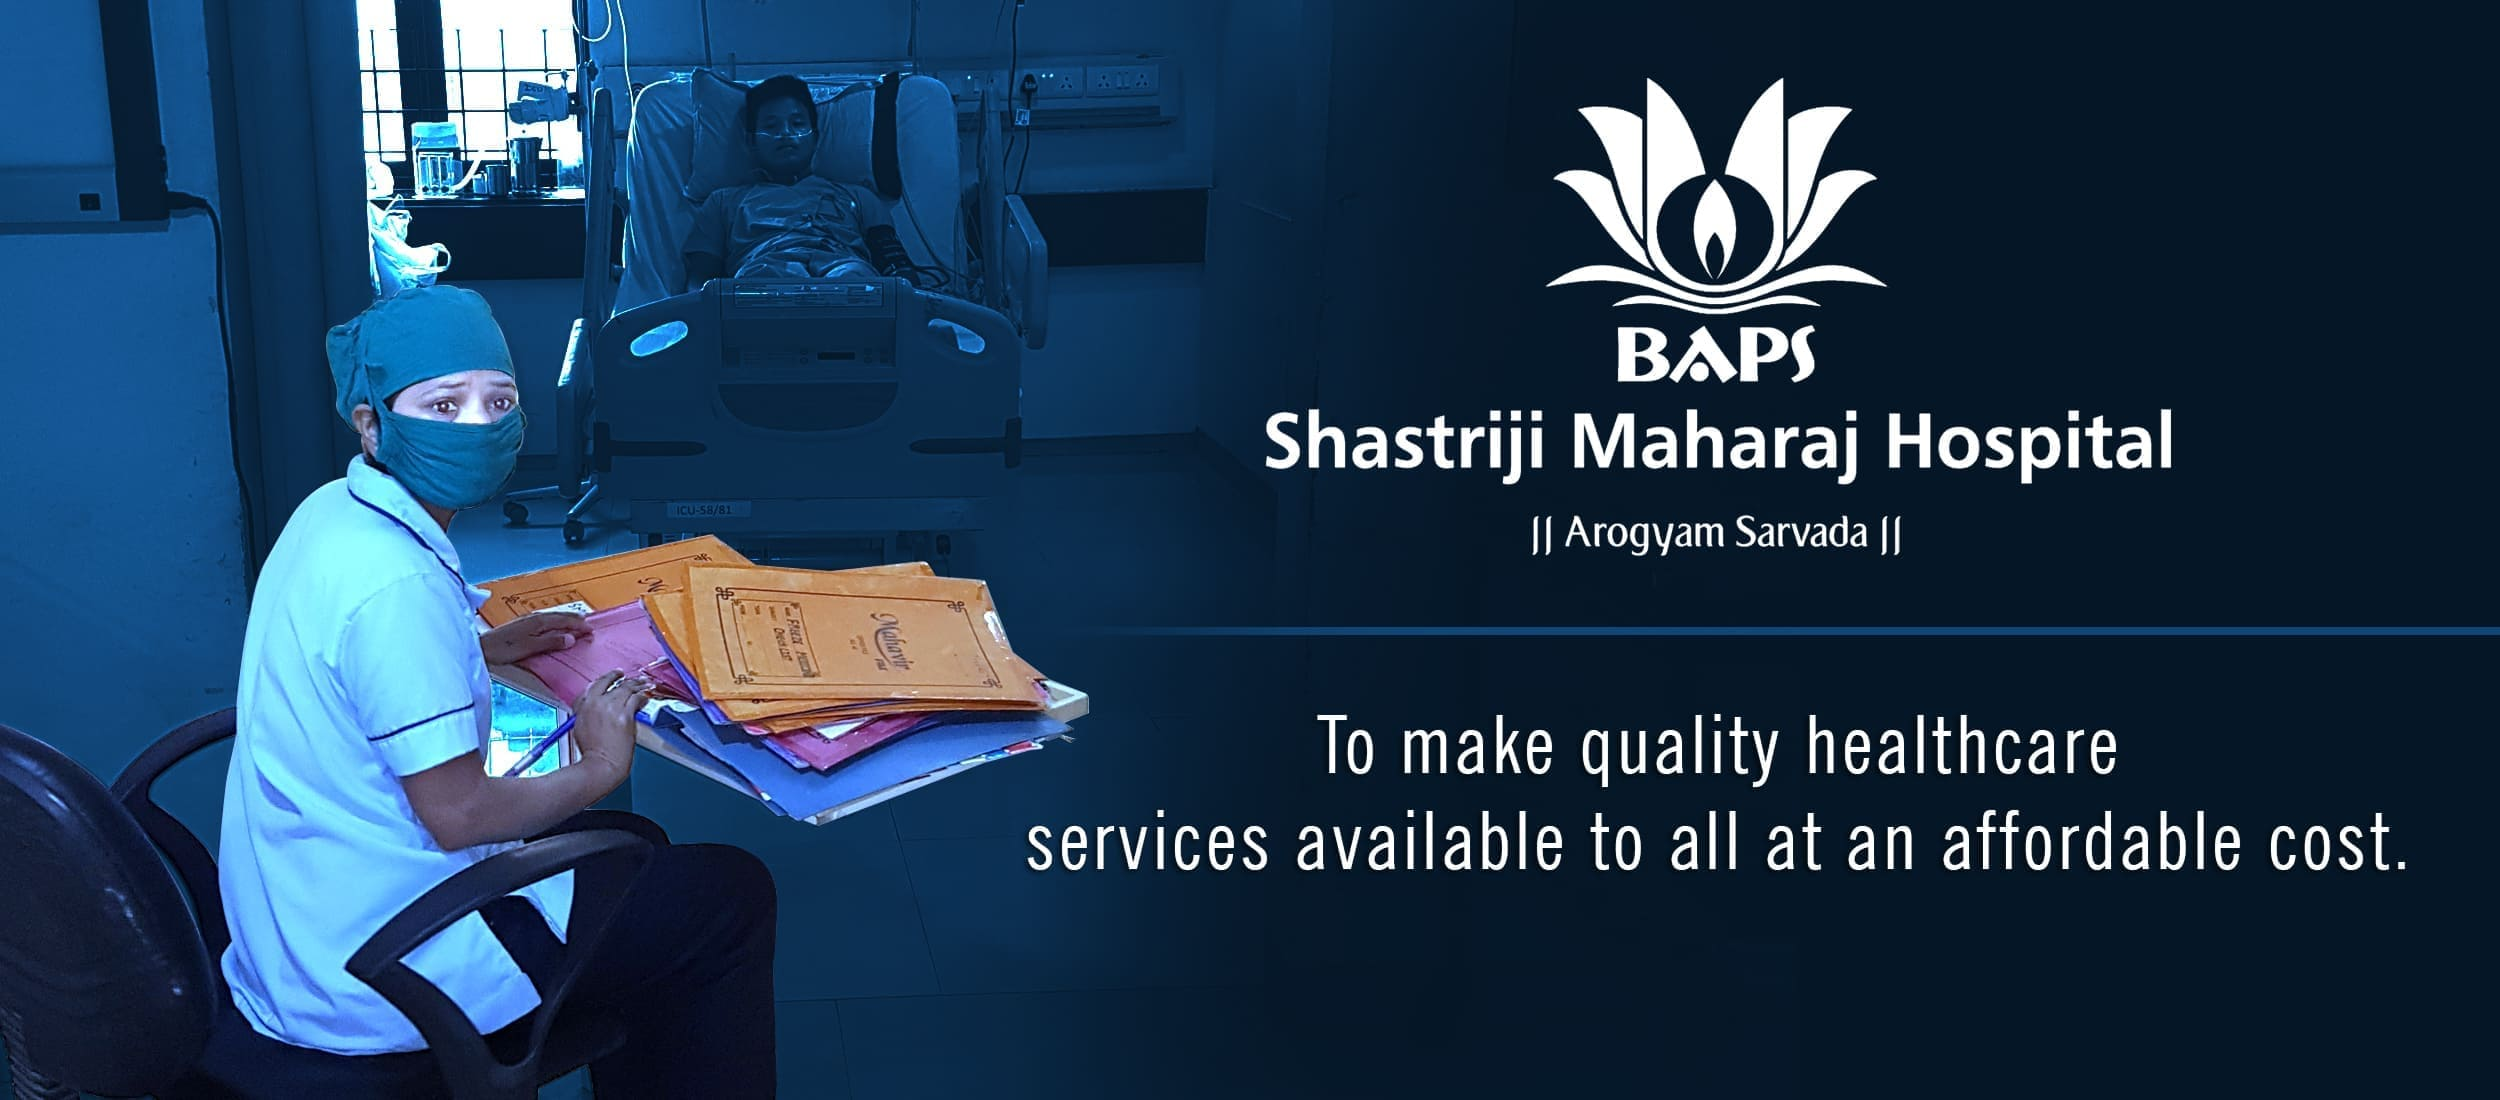 BAPS Shastriji Maharaj Hospital - Be an Organ Donor. Support The Cause